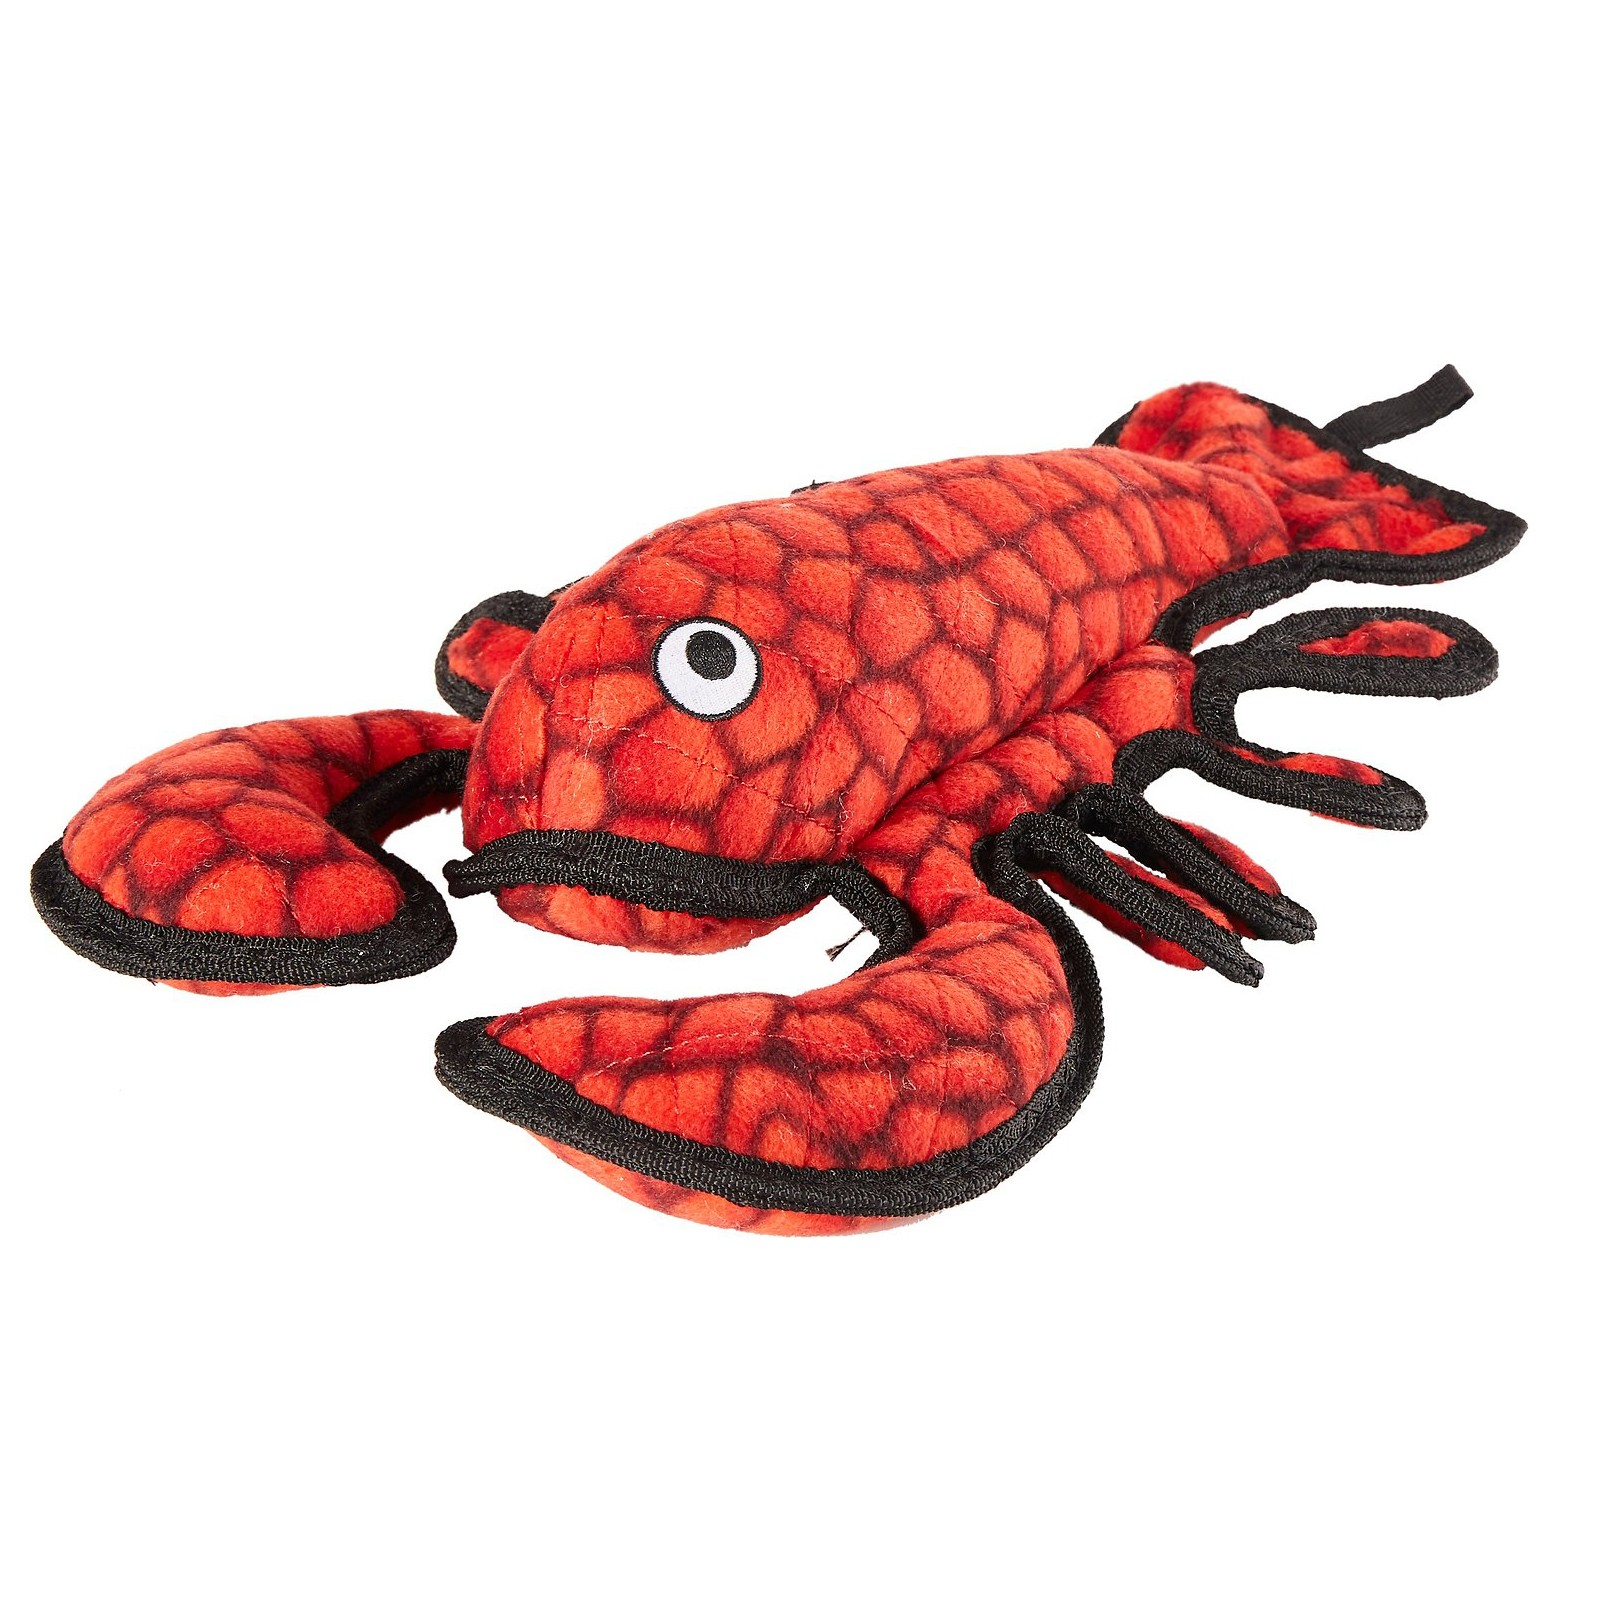 Tuffy Ocean JR Lobster Tough Soft Toy for Dogs